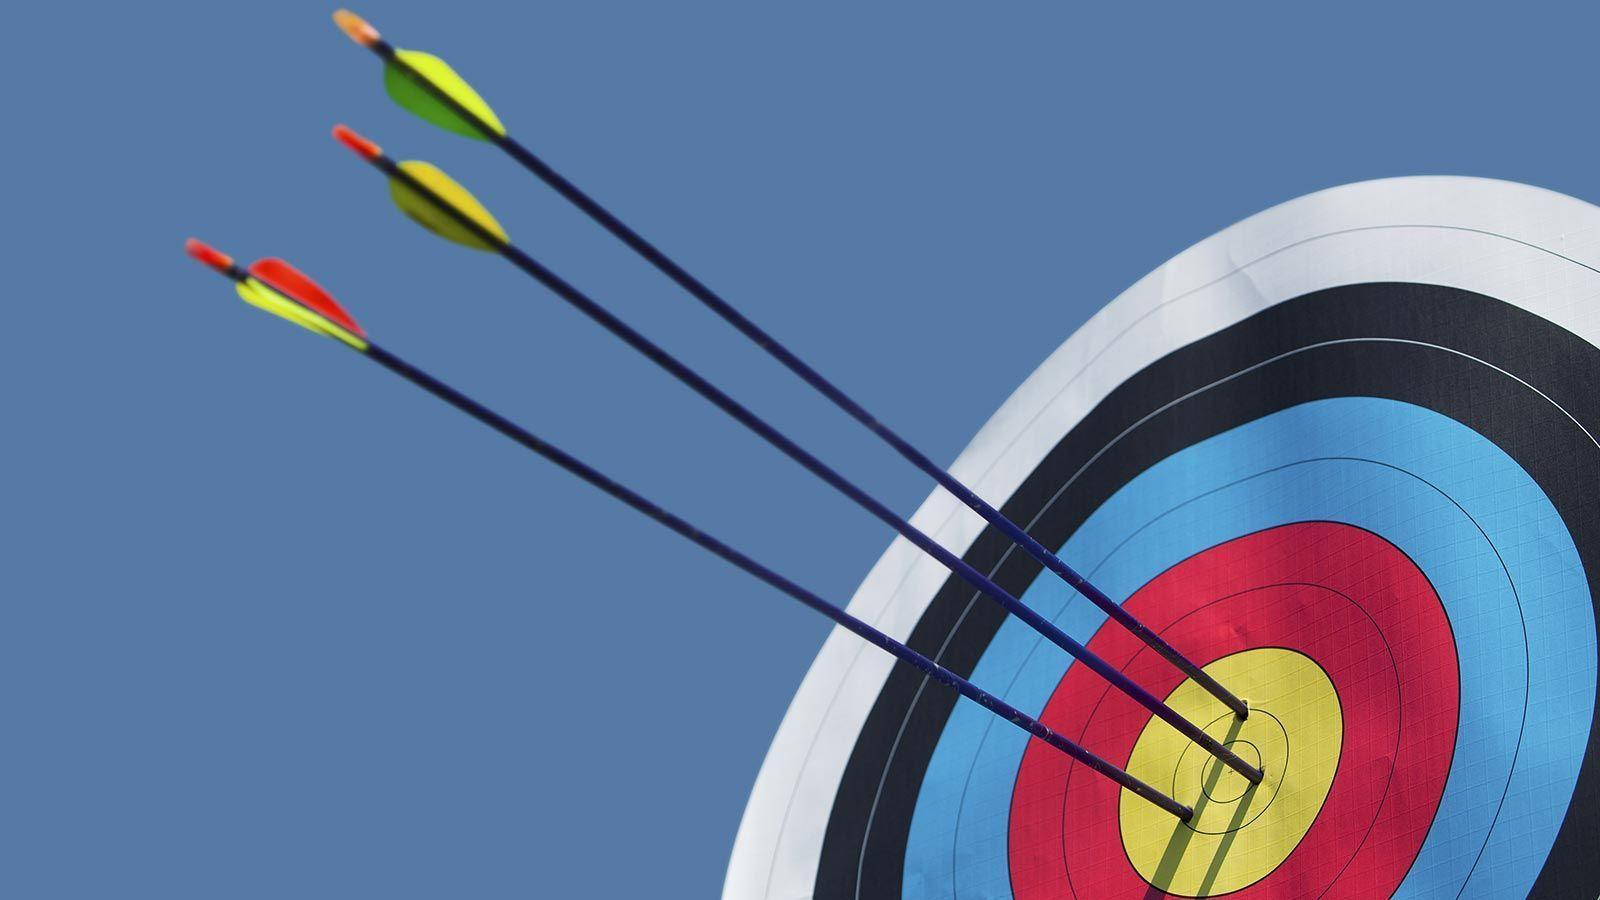 Images For > Archery Target Wallpaper